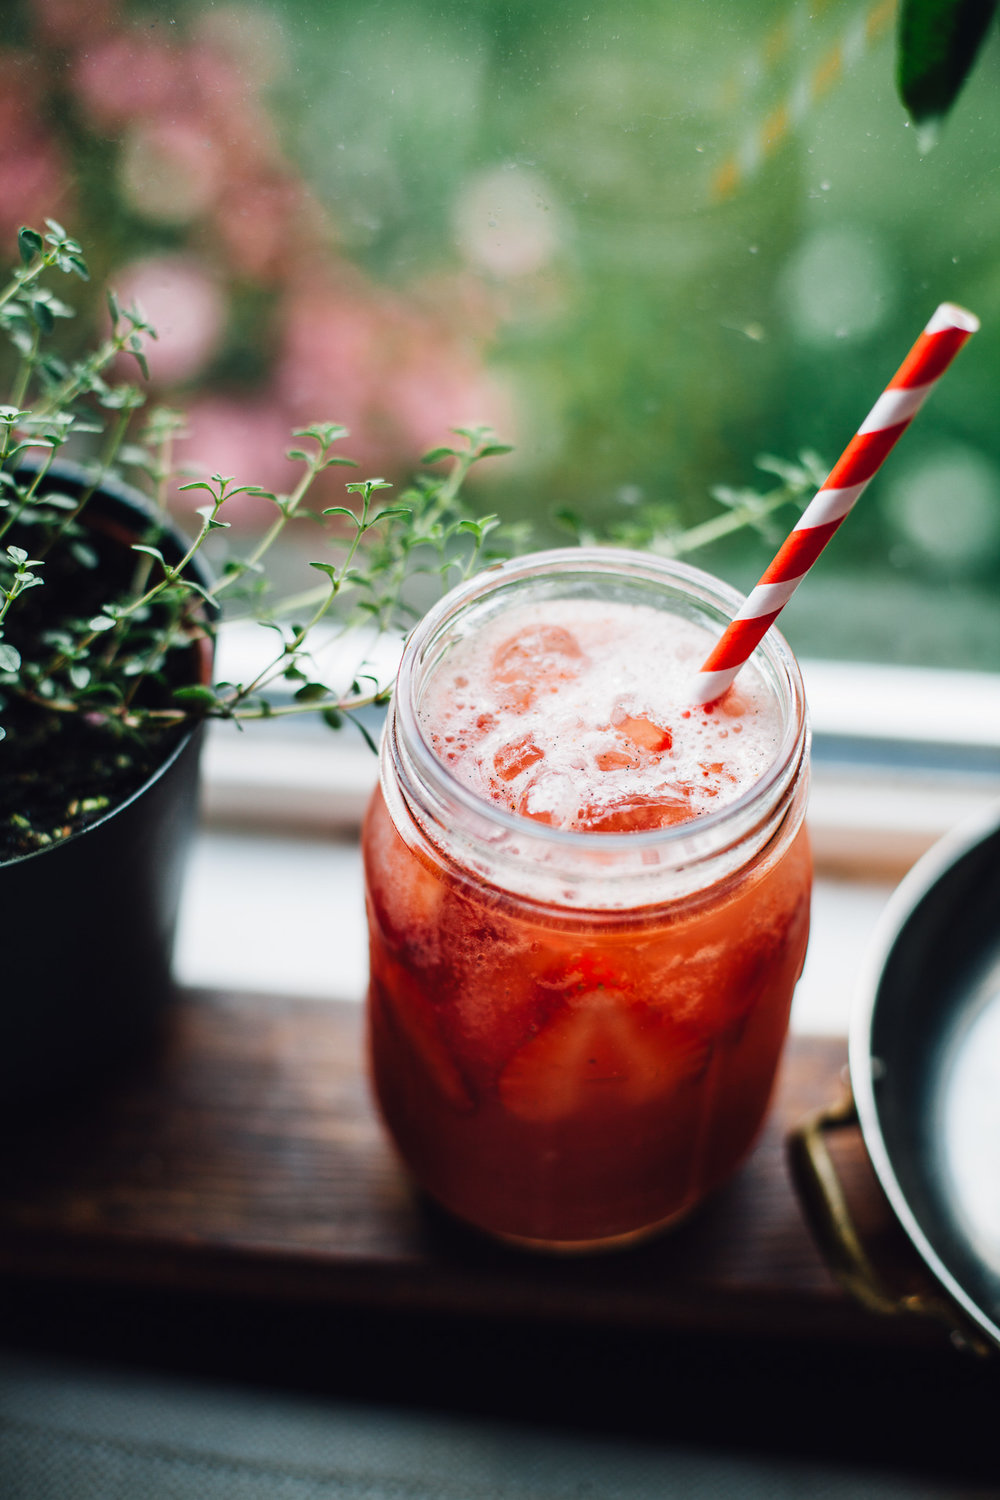 roasted strawberry rhubarb agua fresca | refined sugar free recipe via willfrolicforfood.com